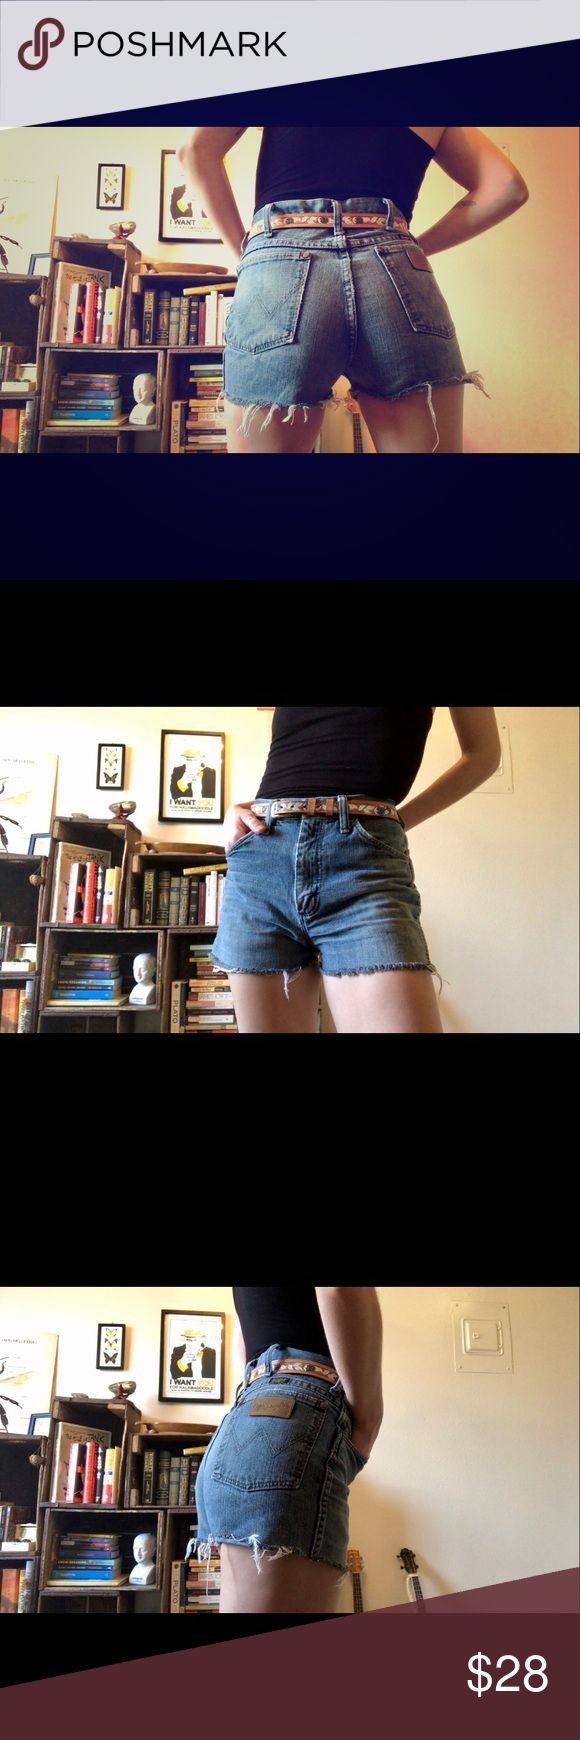 "Vintage Wrangler Custom Cutoffs - Short Shorts Amazing Wrangler cut-offs! High waisted and frayed to perfection in a light blue/grey wash. Last photo shows light separation/ fraying in seam but still sturdy! Waist measures 14"" flat across with 17"" through the hip. 1 1/2 inch inseam. I've never worn them (other than for photos) as they are slightly too big for me. Again, these are not Levi's, they are Wrangler- labeled for the views. Levi's Shorts Jean Shorts"